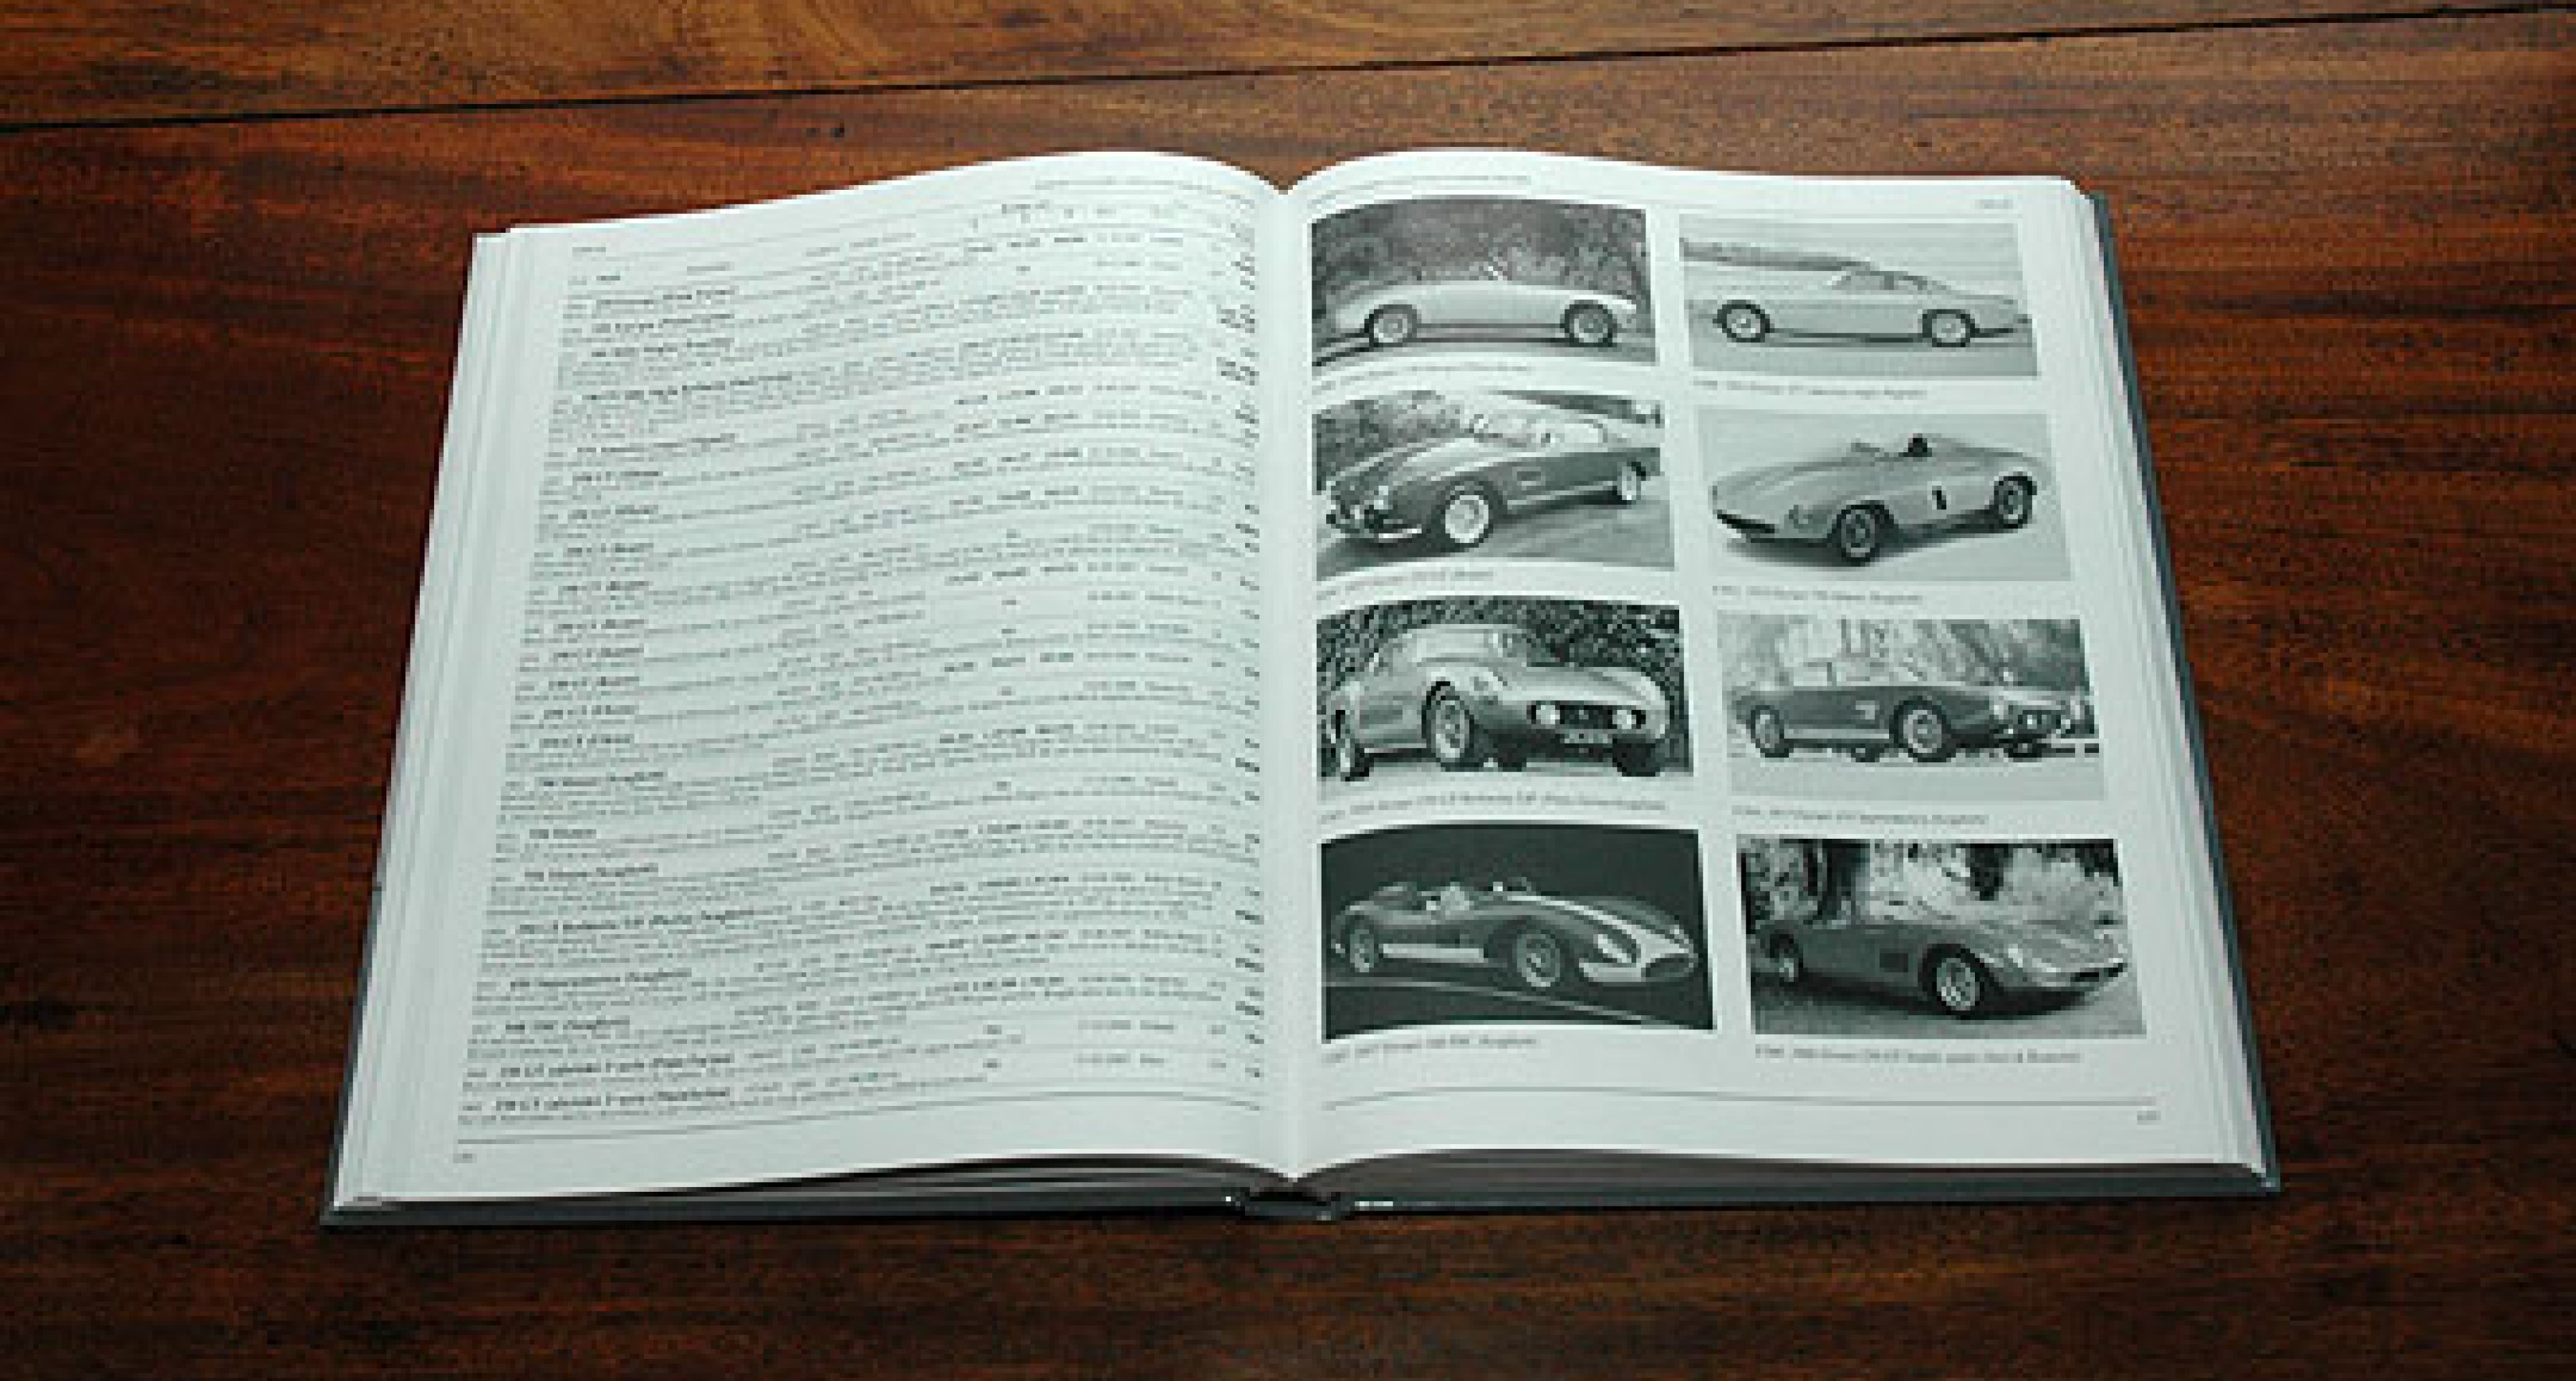 Hagerty's Classic Car Auction 2006 – 2008 Yearbook